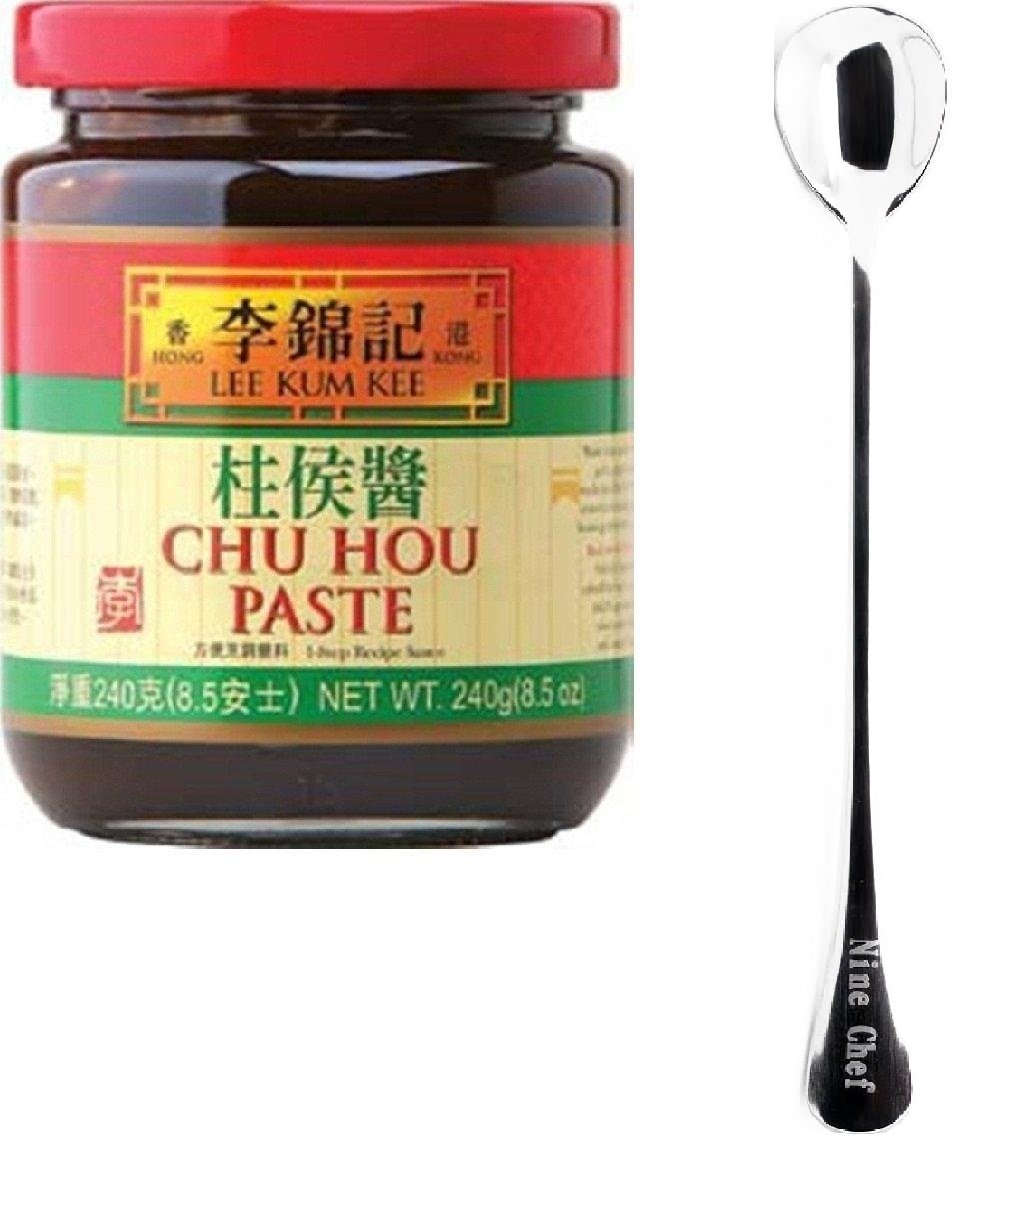 Amazon.com : Lee Kum Kee Sauce (Chu Hou Paste (柱候酱), 3 Bottle) + One NineChef Spoon : Grocery & Gourmet Food